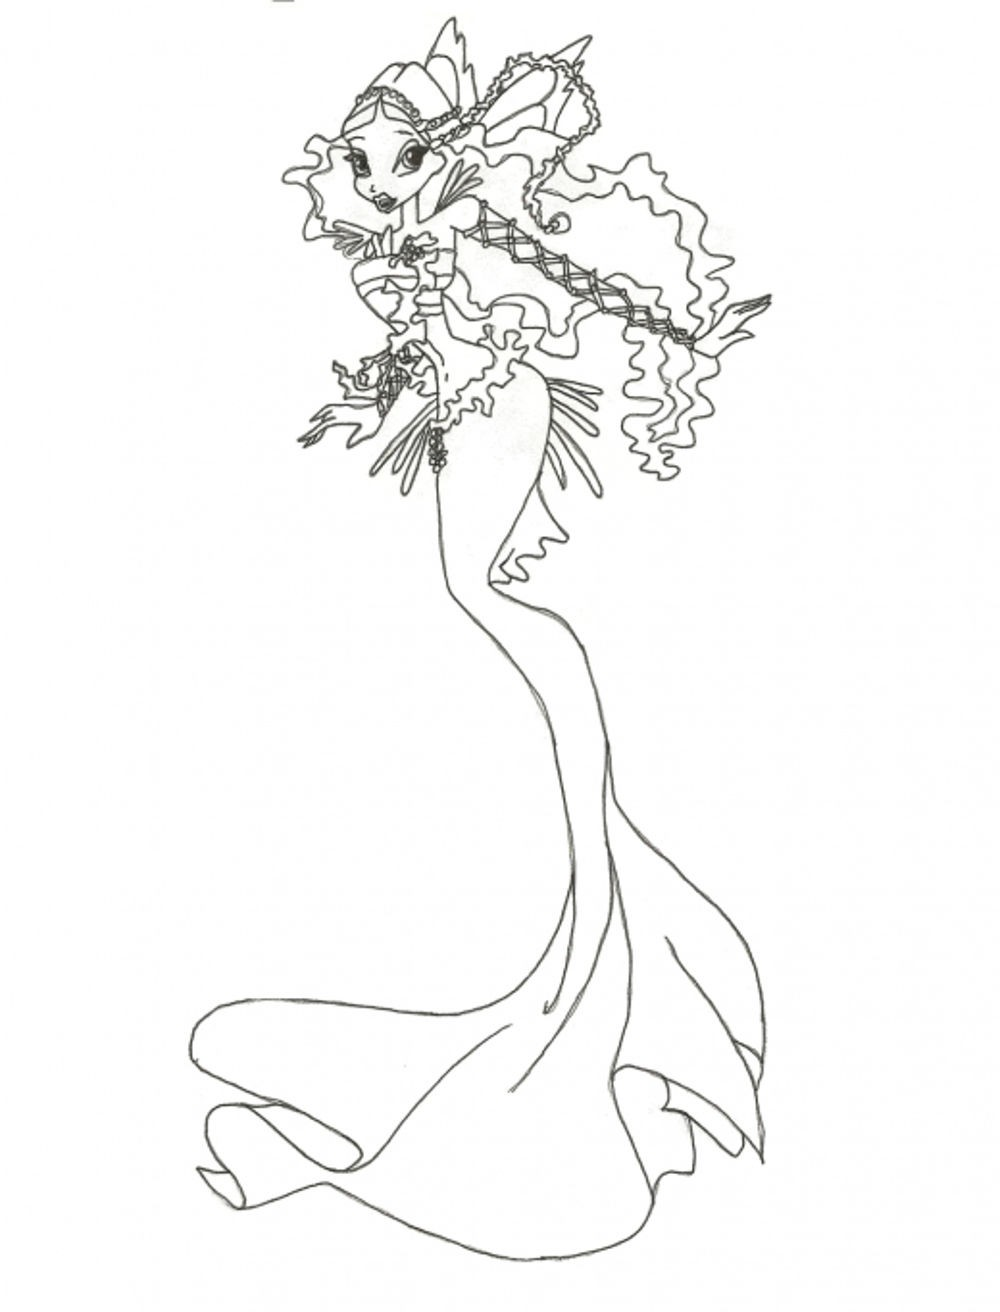 shop related products - Barbie Mermaid Coloring Page